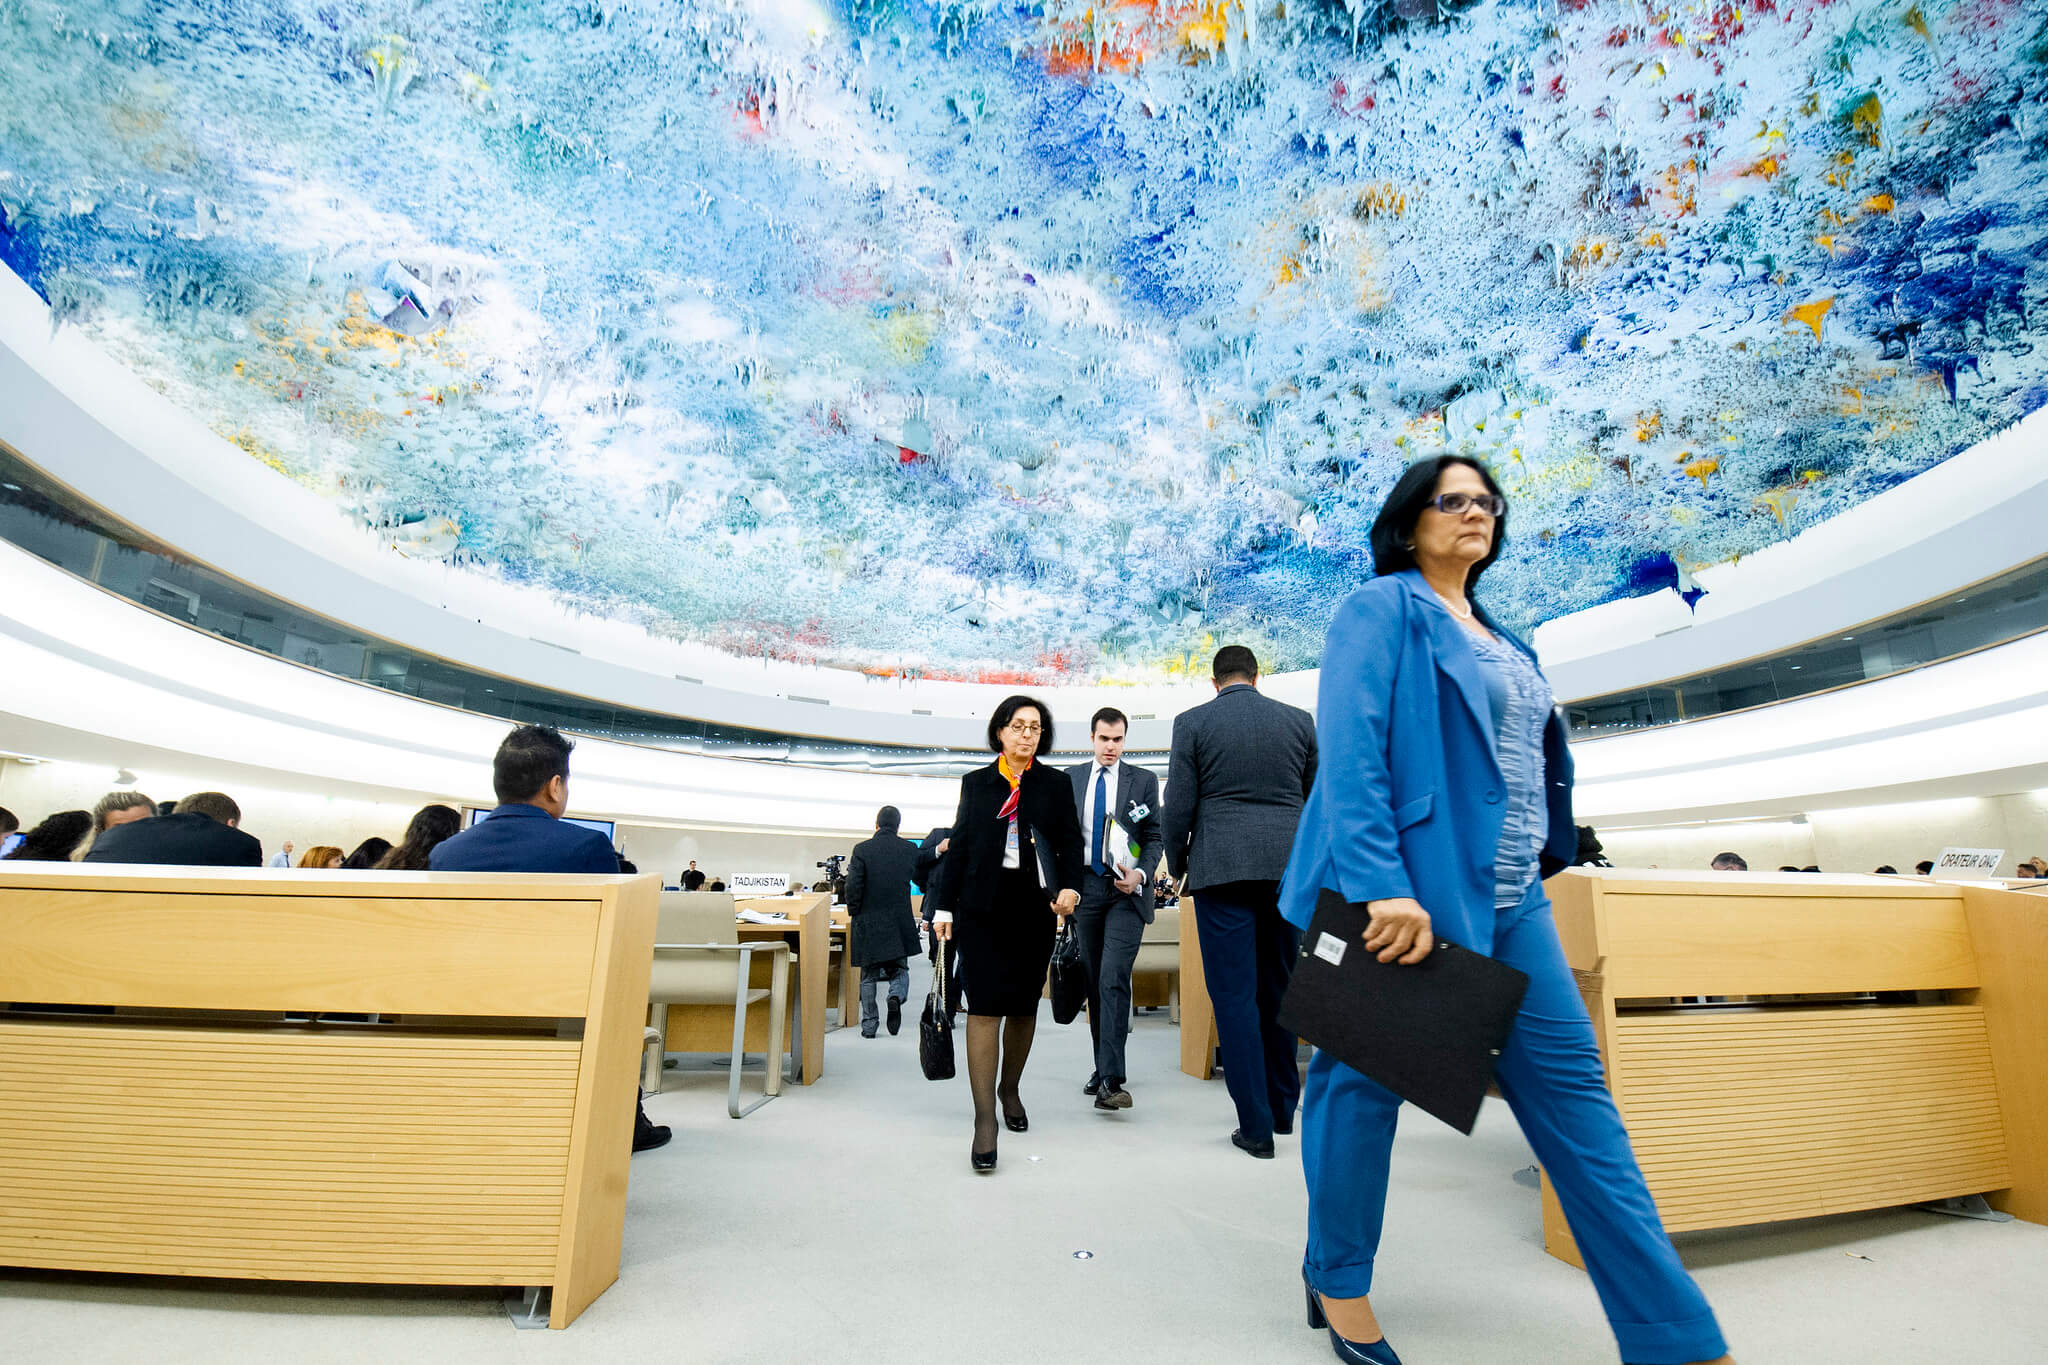 Delegates leave the room during the speech of Jorge Arreaza Montserrat, Minister of People's Power for Foreign Affairs of Venezuela, Human Rights Council. 25 February 2020